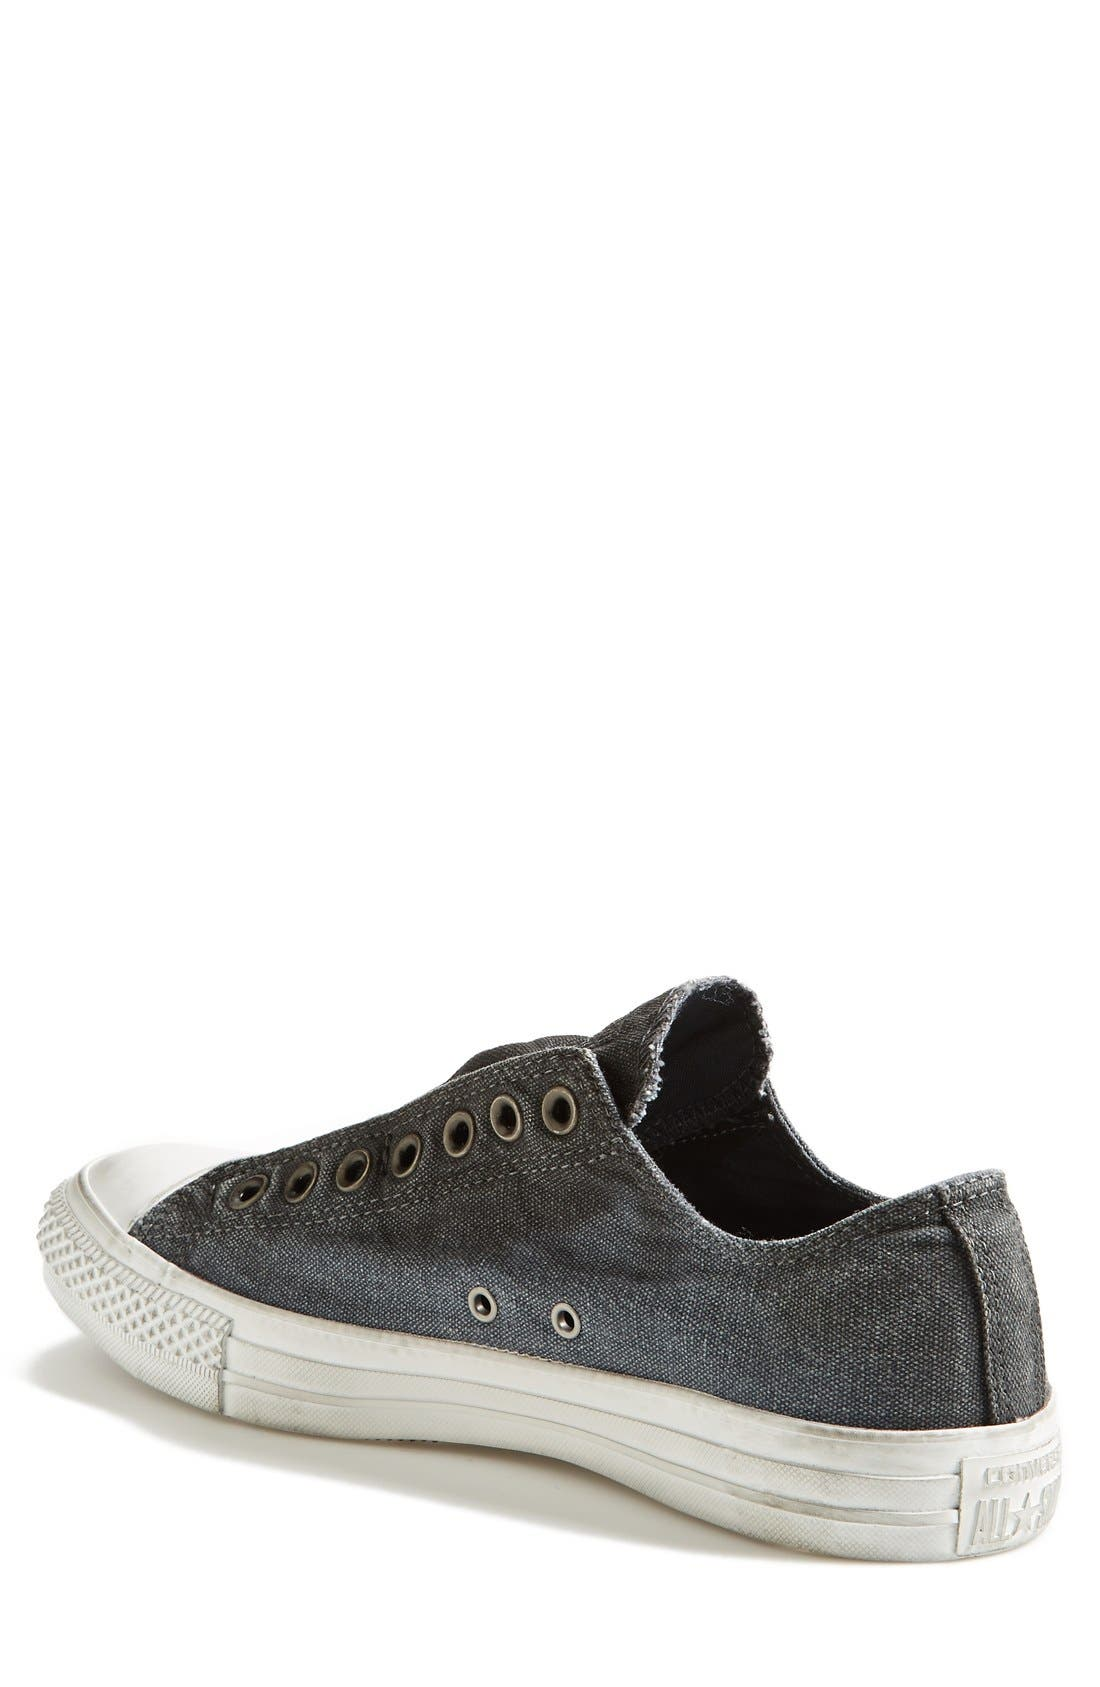 CONVERSE,                             Chuck Taylor<sup>®</sup> All Star<sup>®</sup> Laceless Sneaker,                             Alternate thumbnail 3, color,                             020